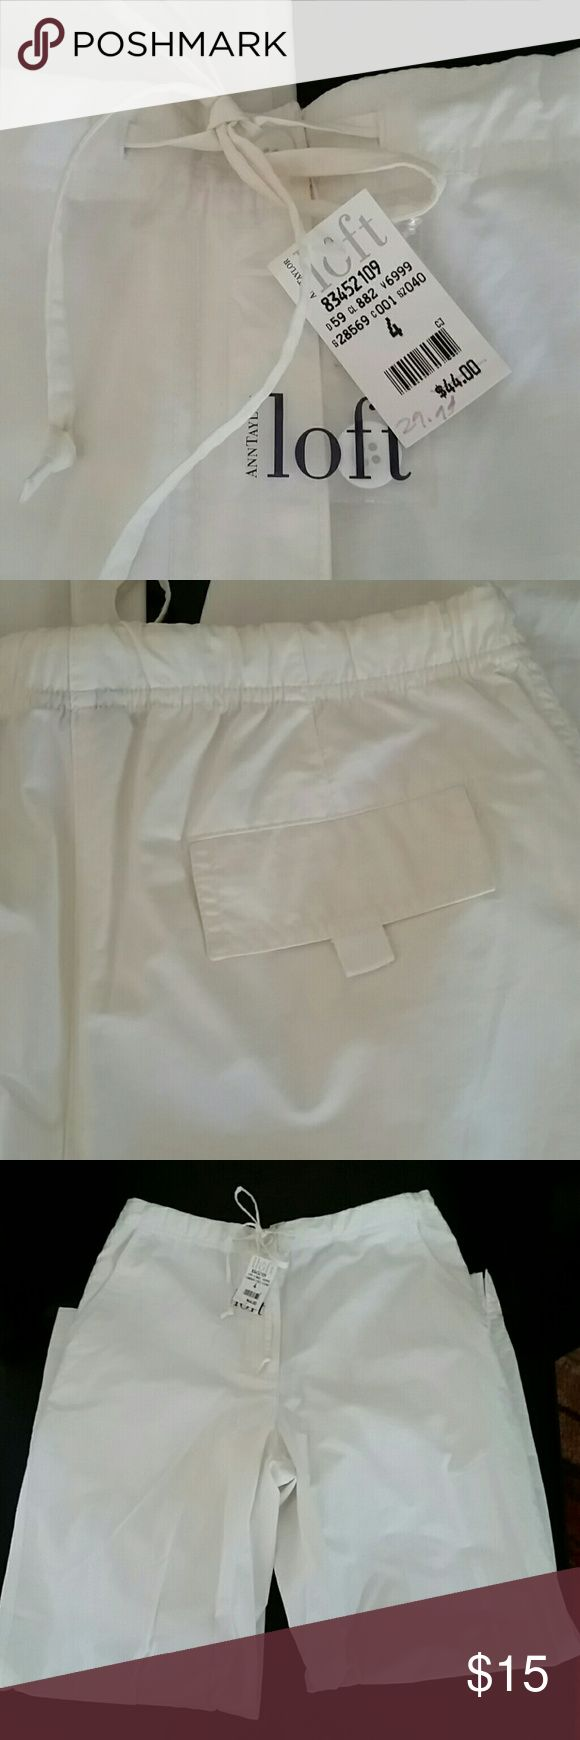 Ann Taylor Loft white cotton pants Cute Ann Taylor Loft cotton pants with drawstring and 1 back pocket Ann Taylor Loft  Pants Wide Leg